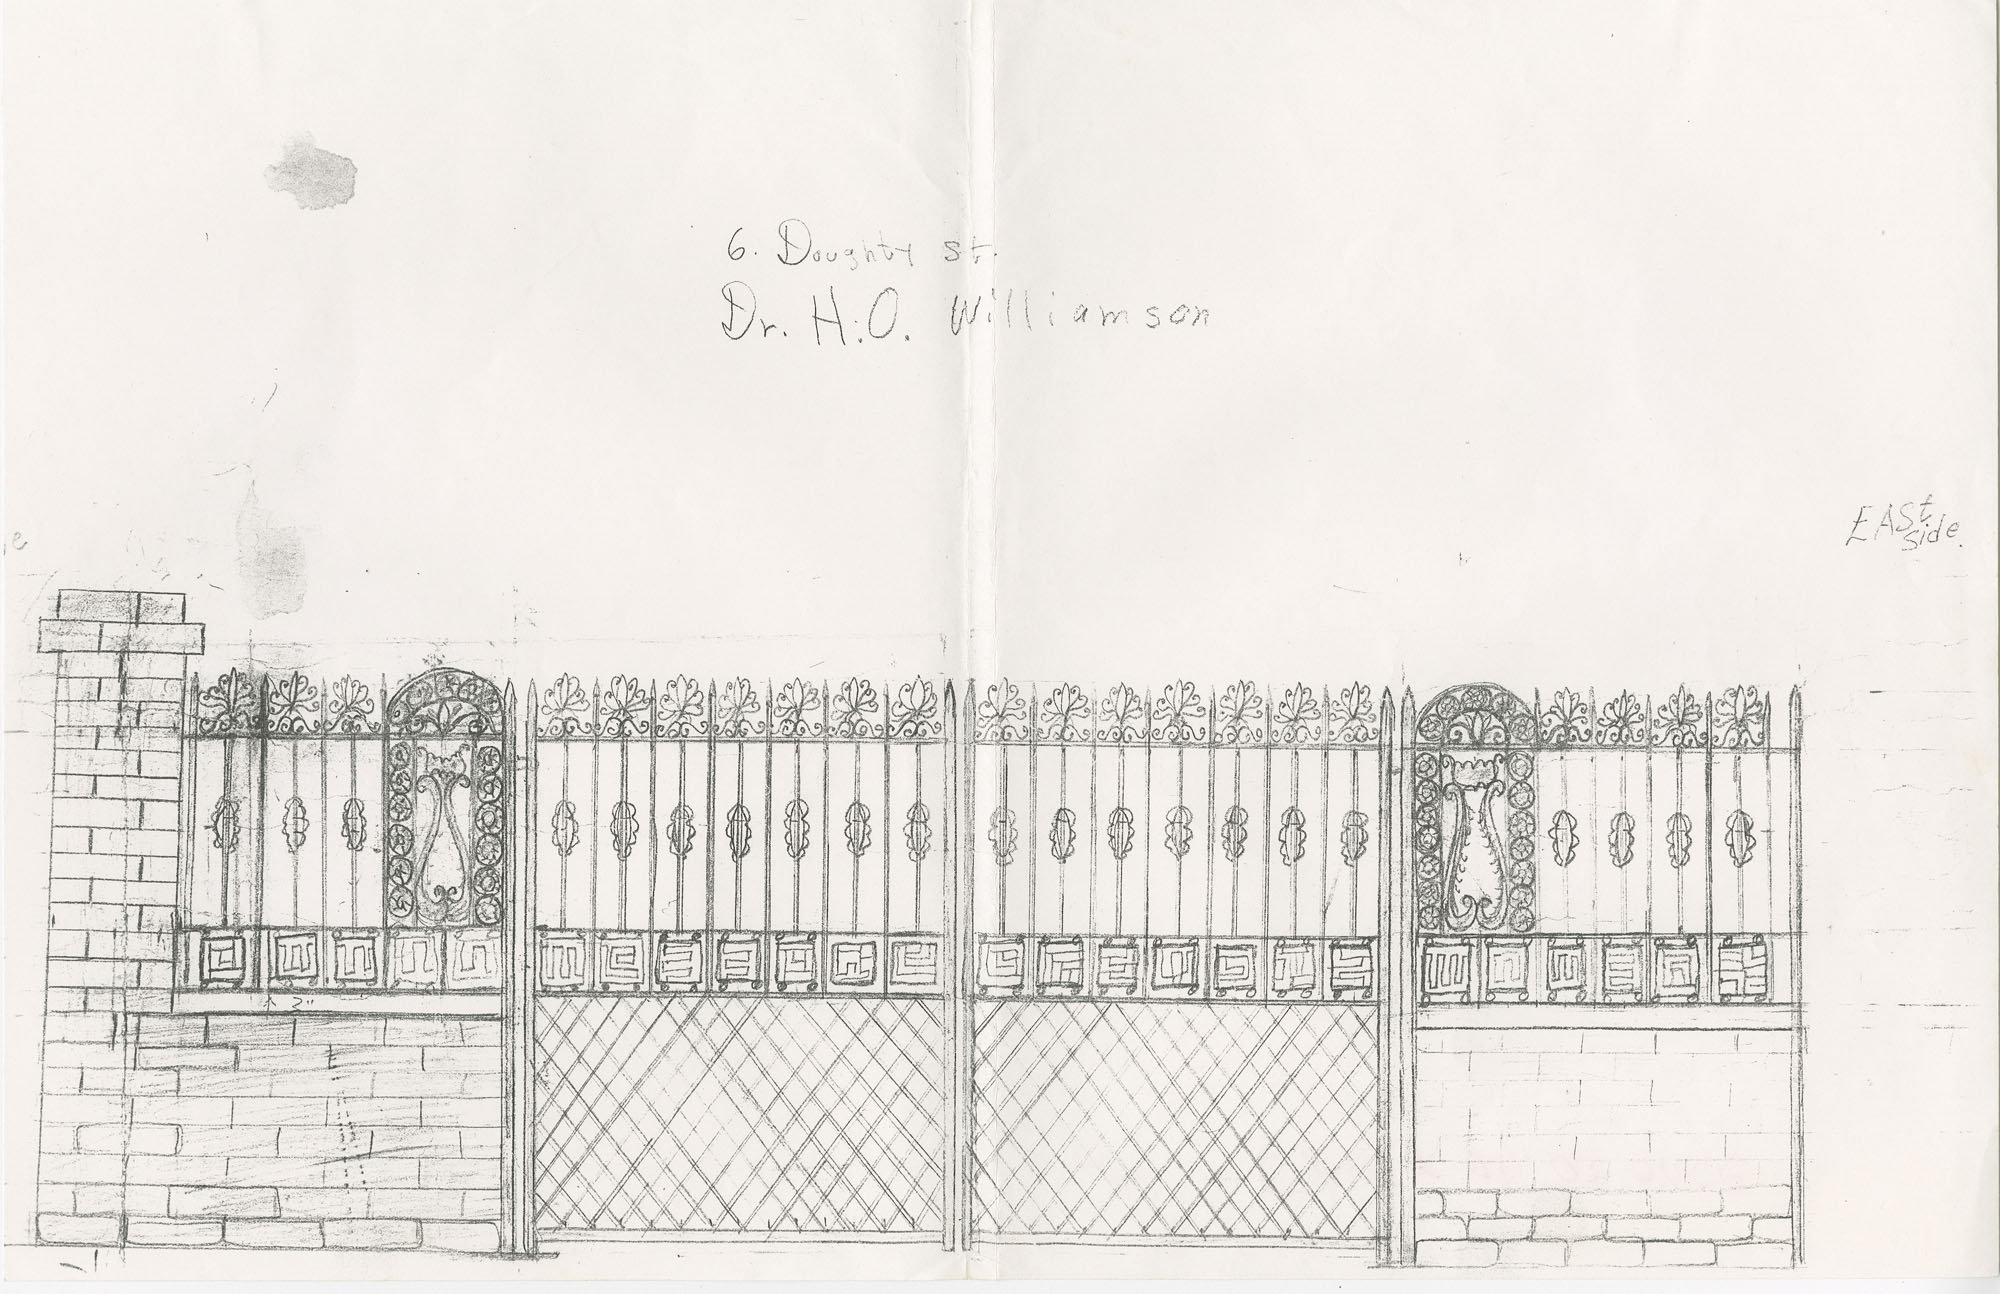 6 Doughty Street gate